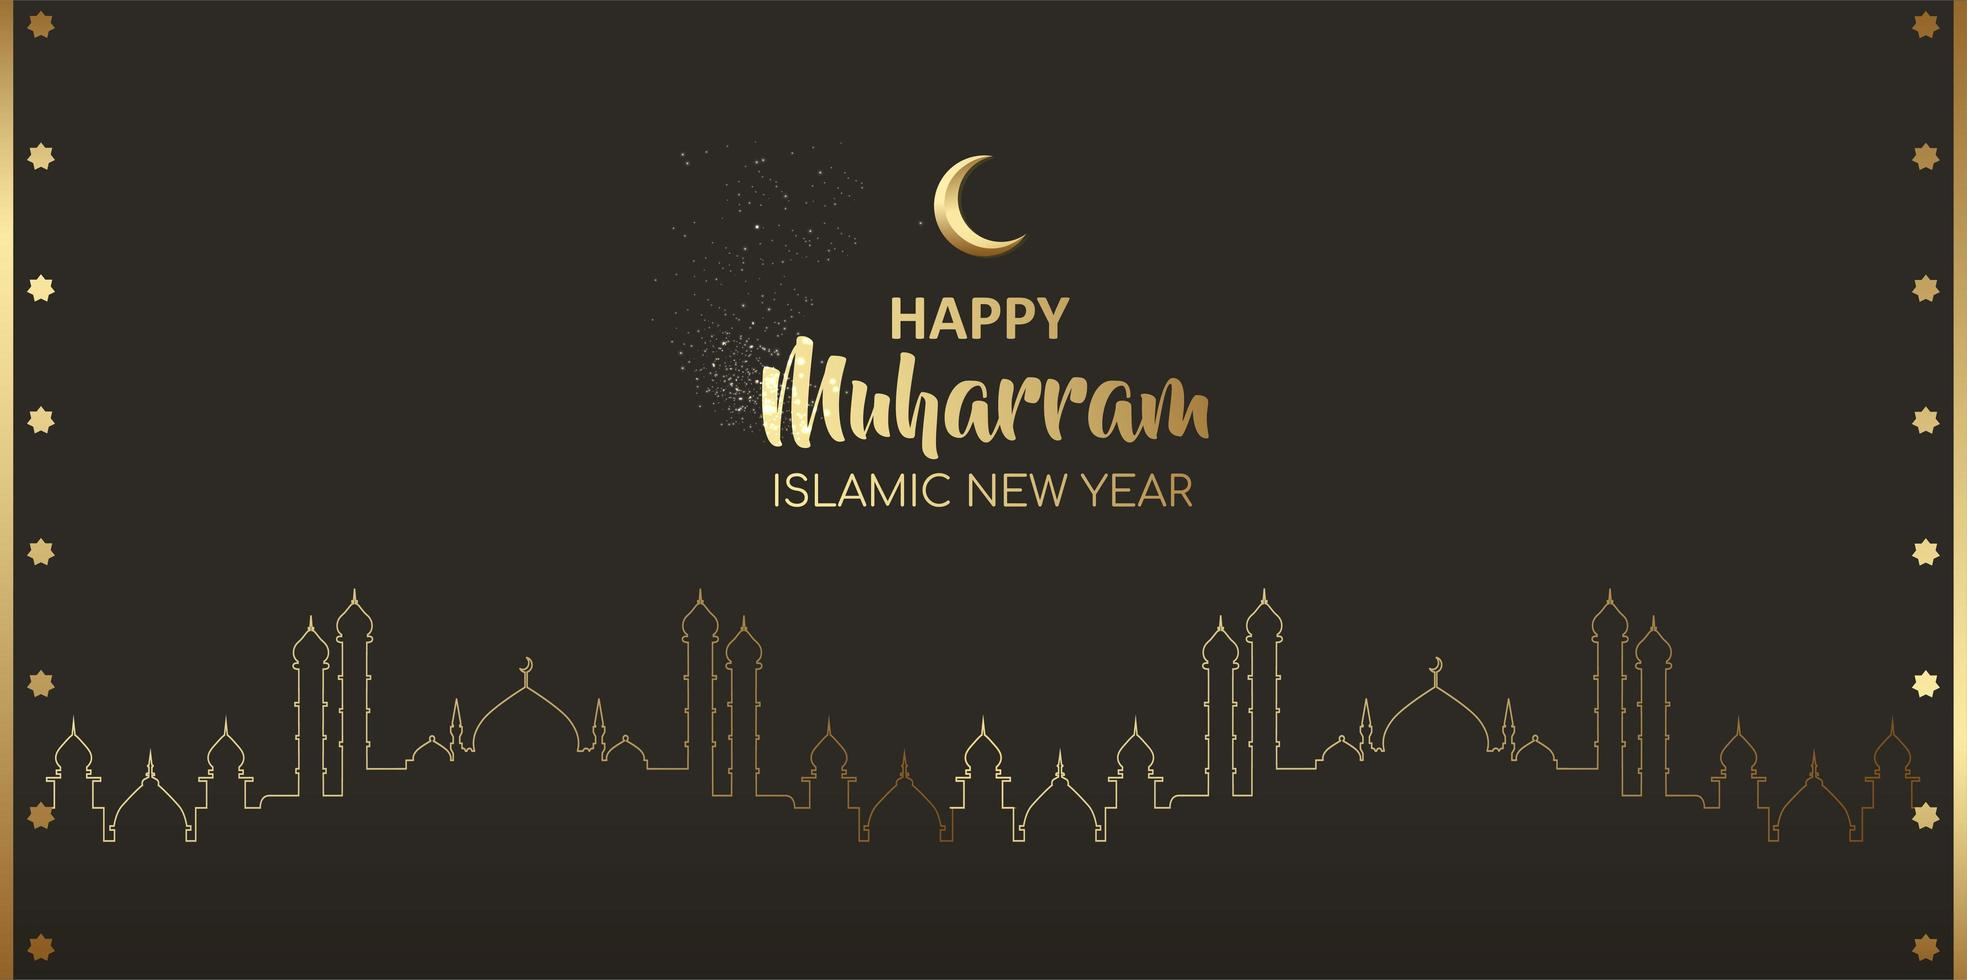 Happy muharram islamic new year card night  design vector